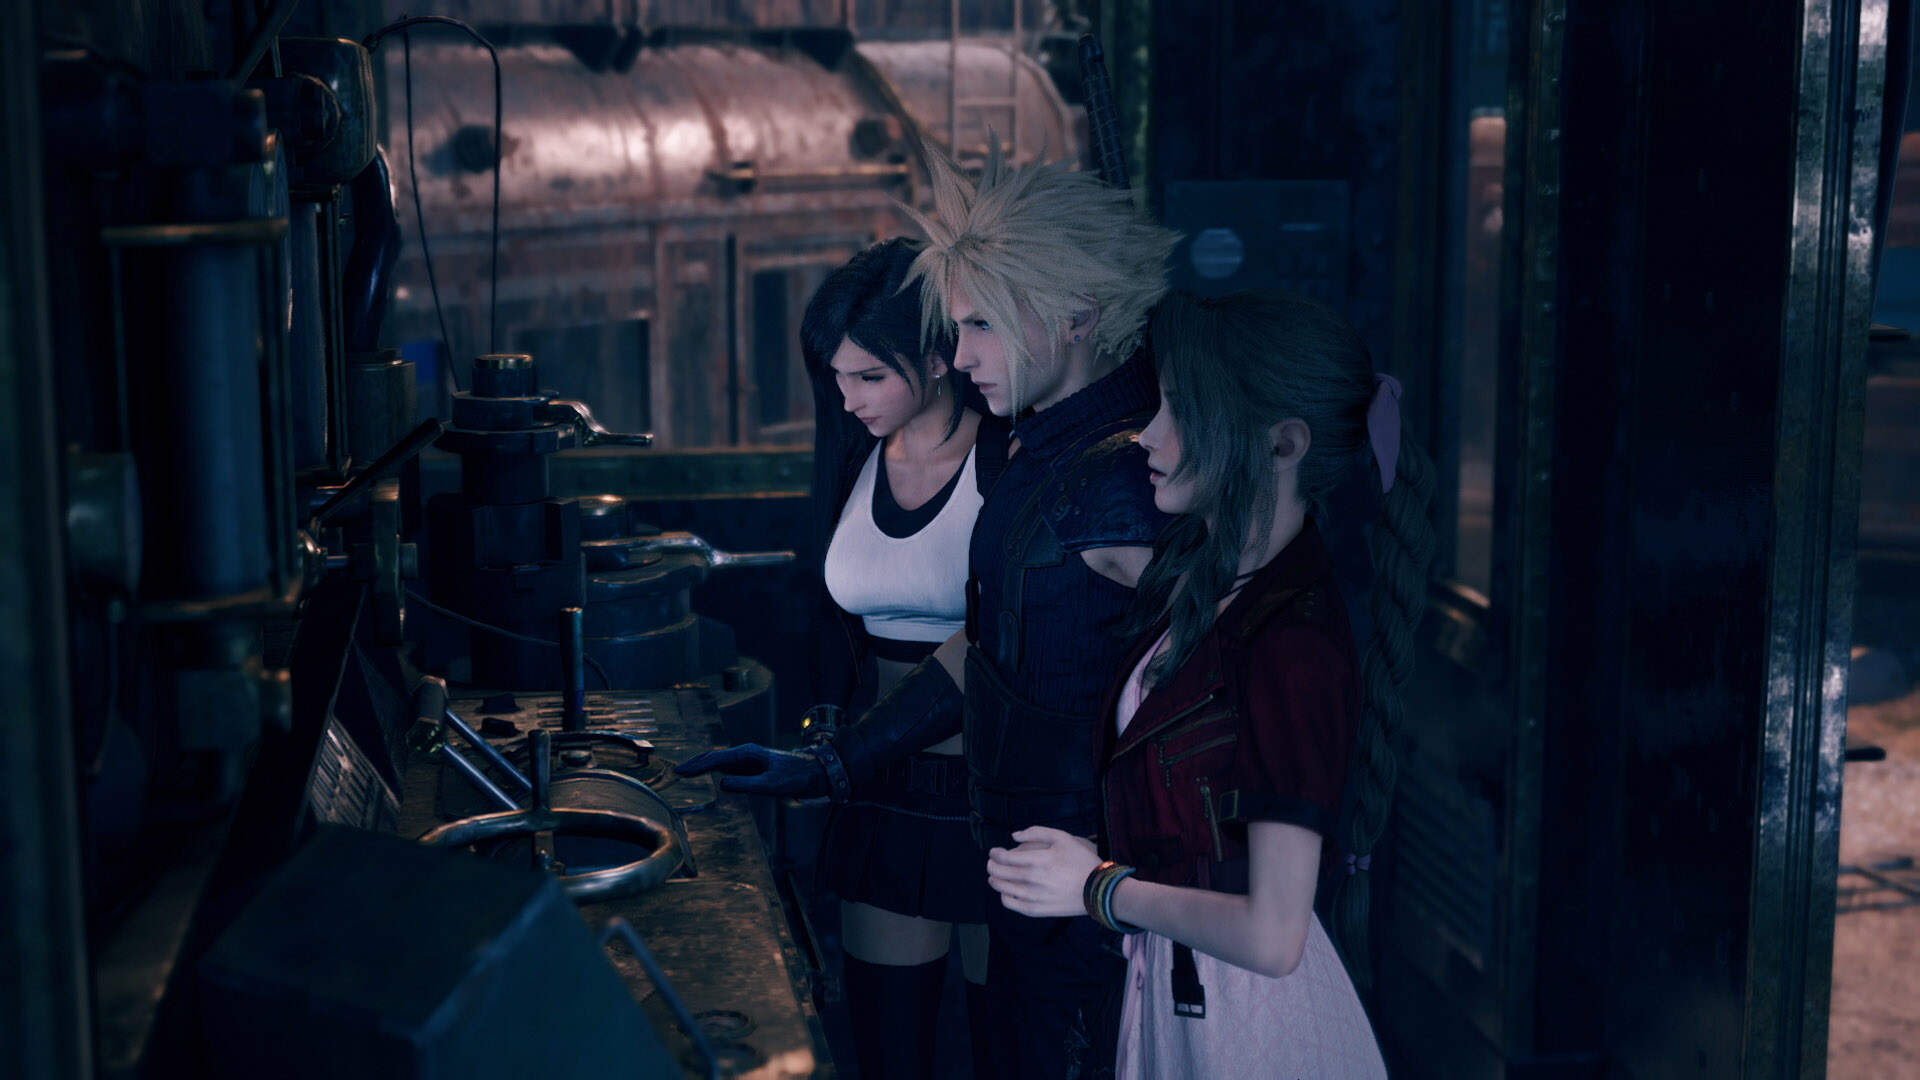 Final Fantasy 7 Remake's Developers Tried to Avoid Playing Favorites With Tifa and Aerith